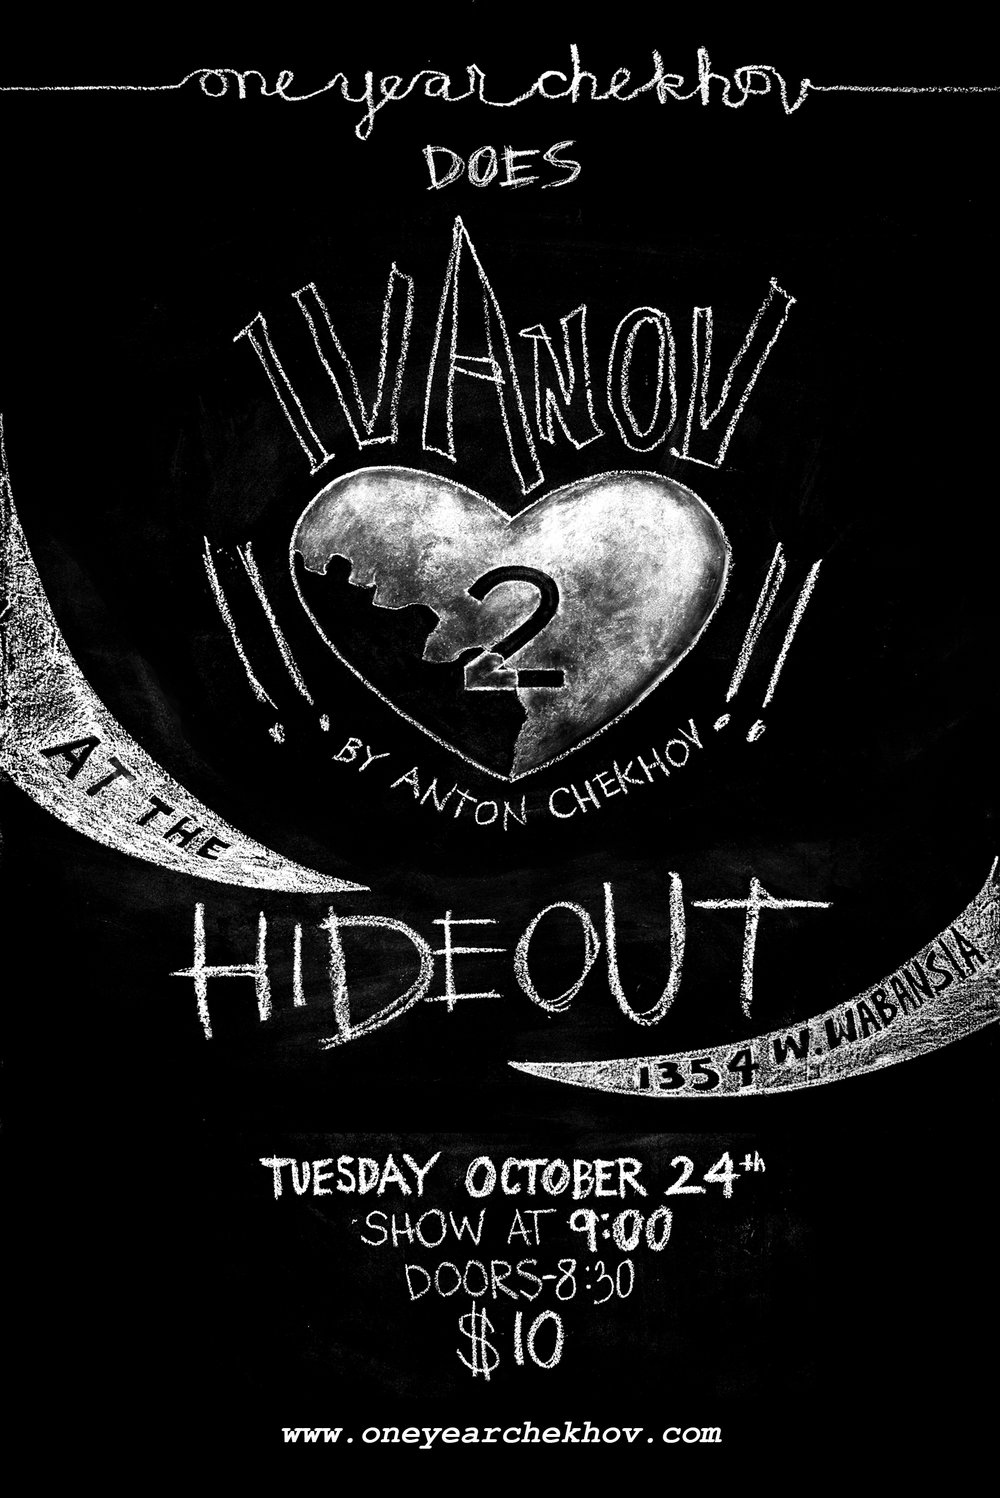 - Laugh, cry, philosophize.8:30 at The Hideout.$10.www.oneyearchekhov.com